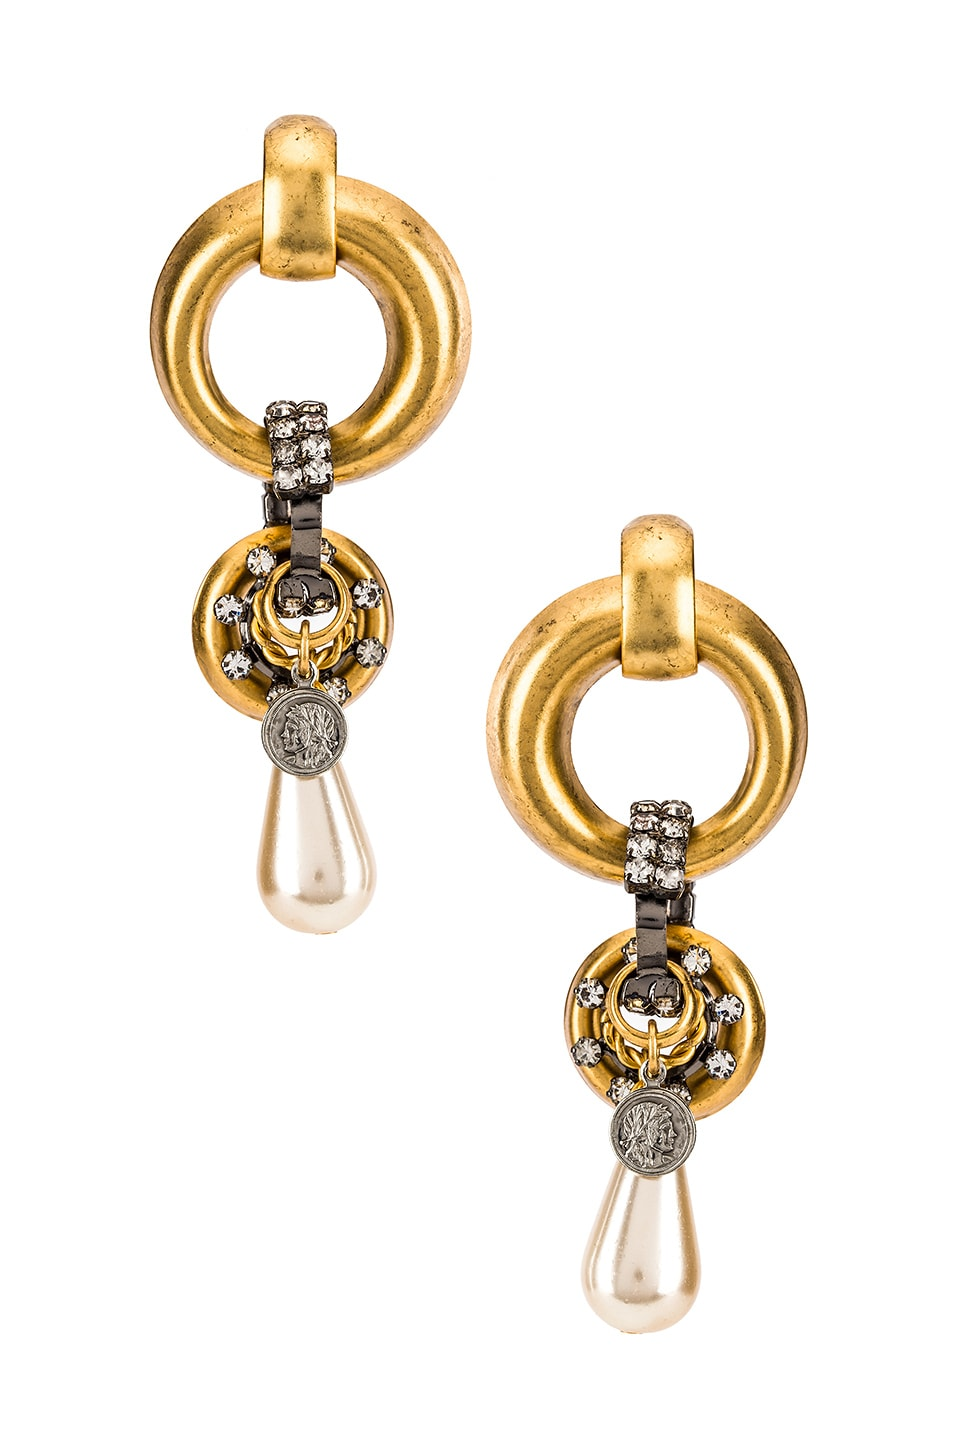 Elizabeth Cole Limone Earrings in Gold